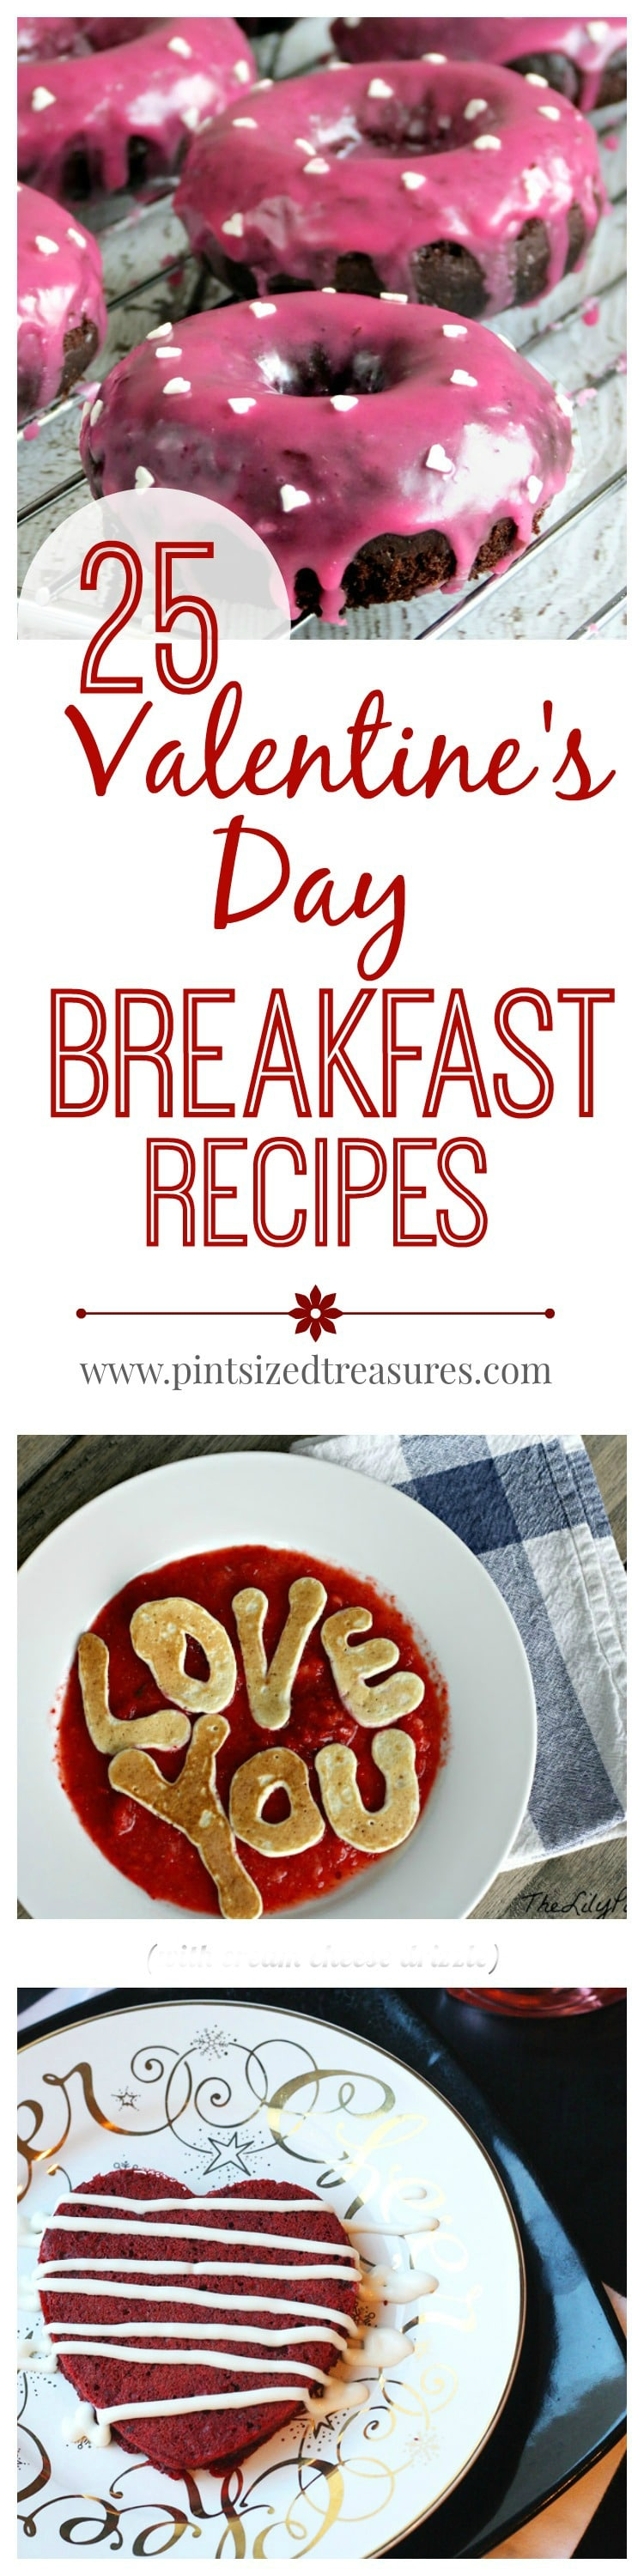 25 Valentine's Day Breakfast Recipes from Pint Size Treasures